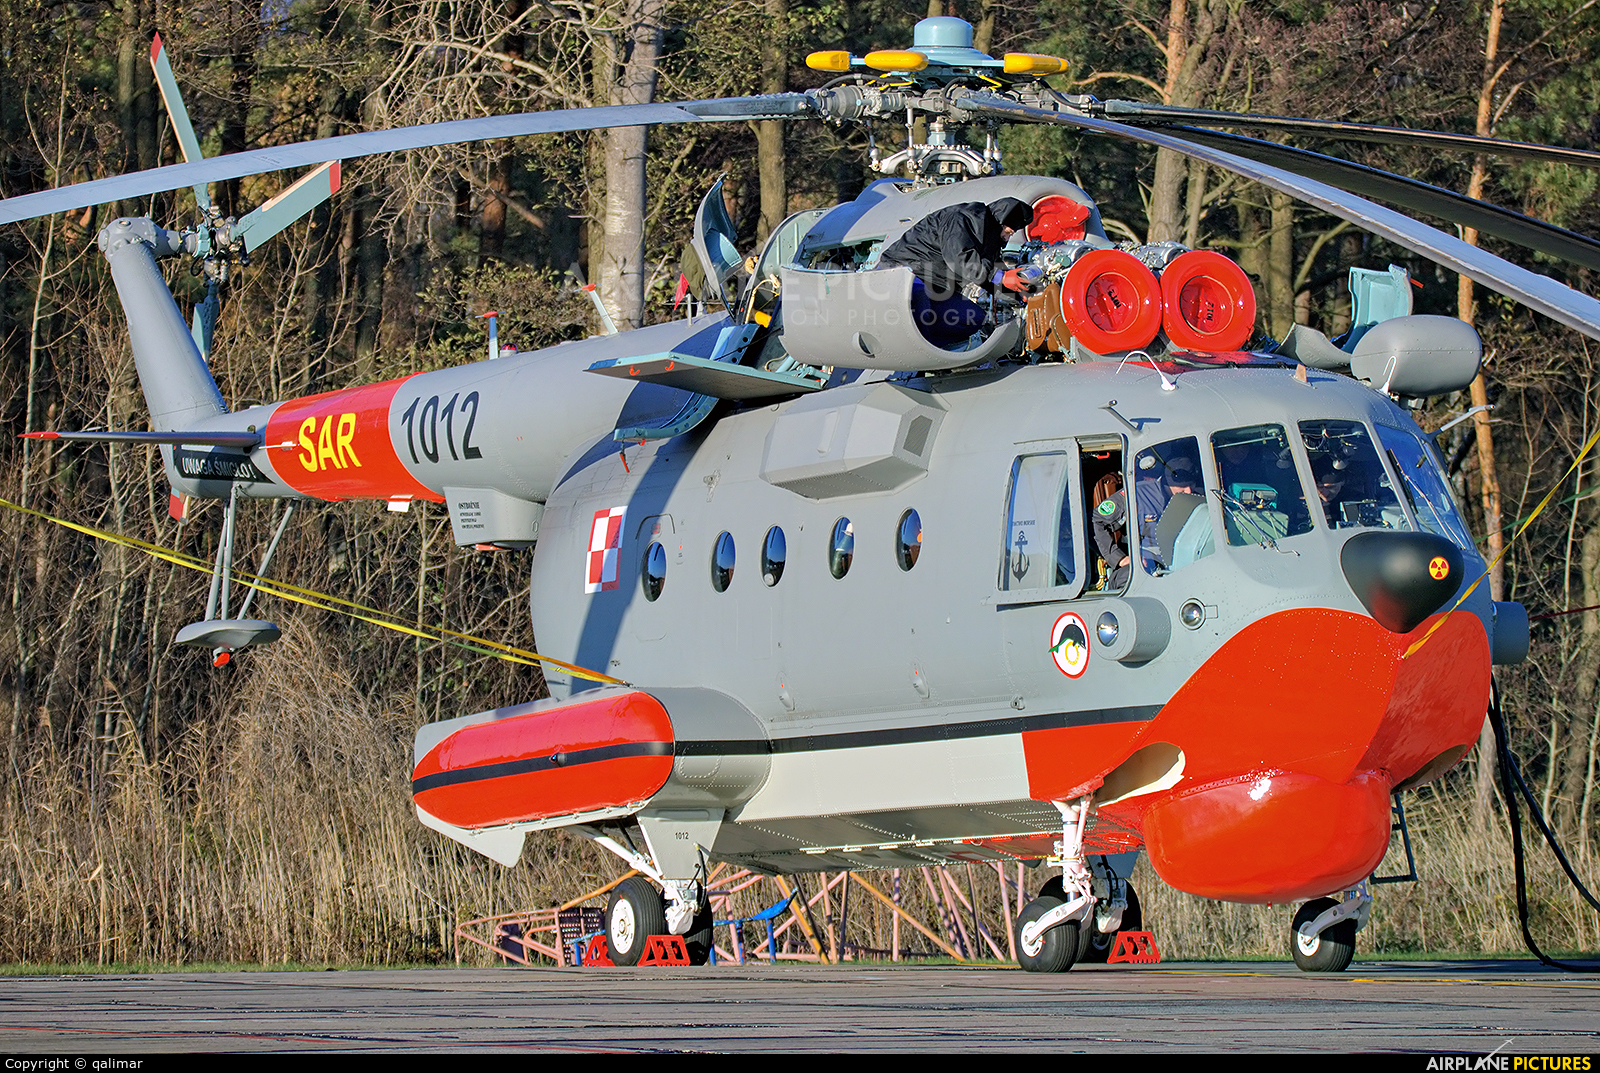 Poland - Navy 1012 aircraft at Darłowo